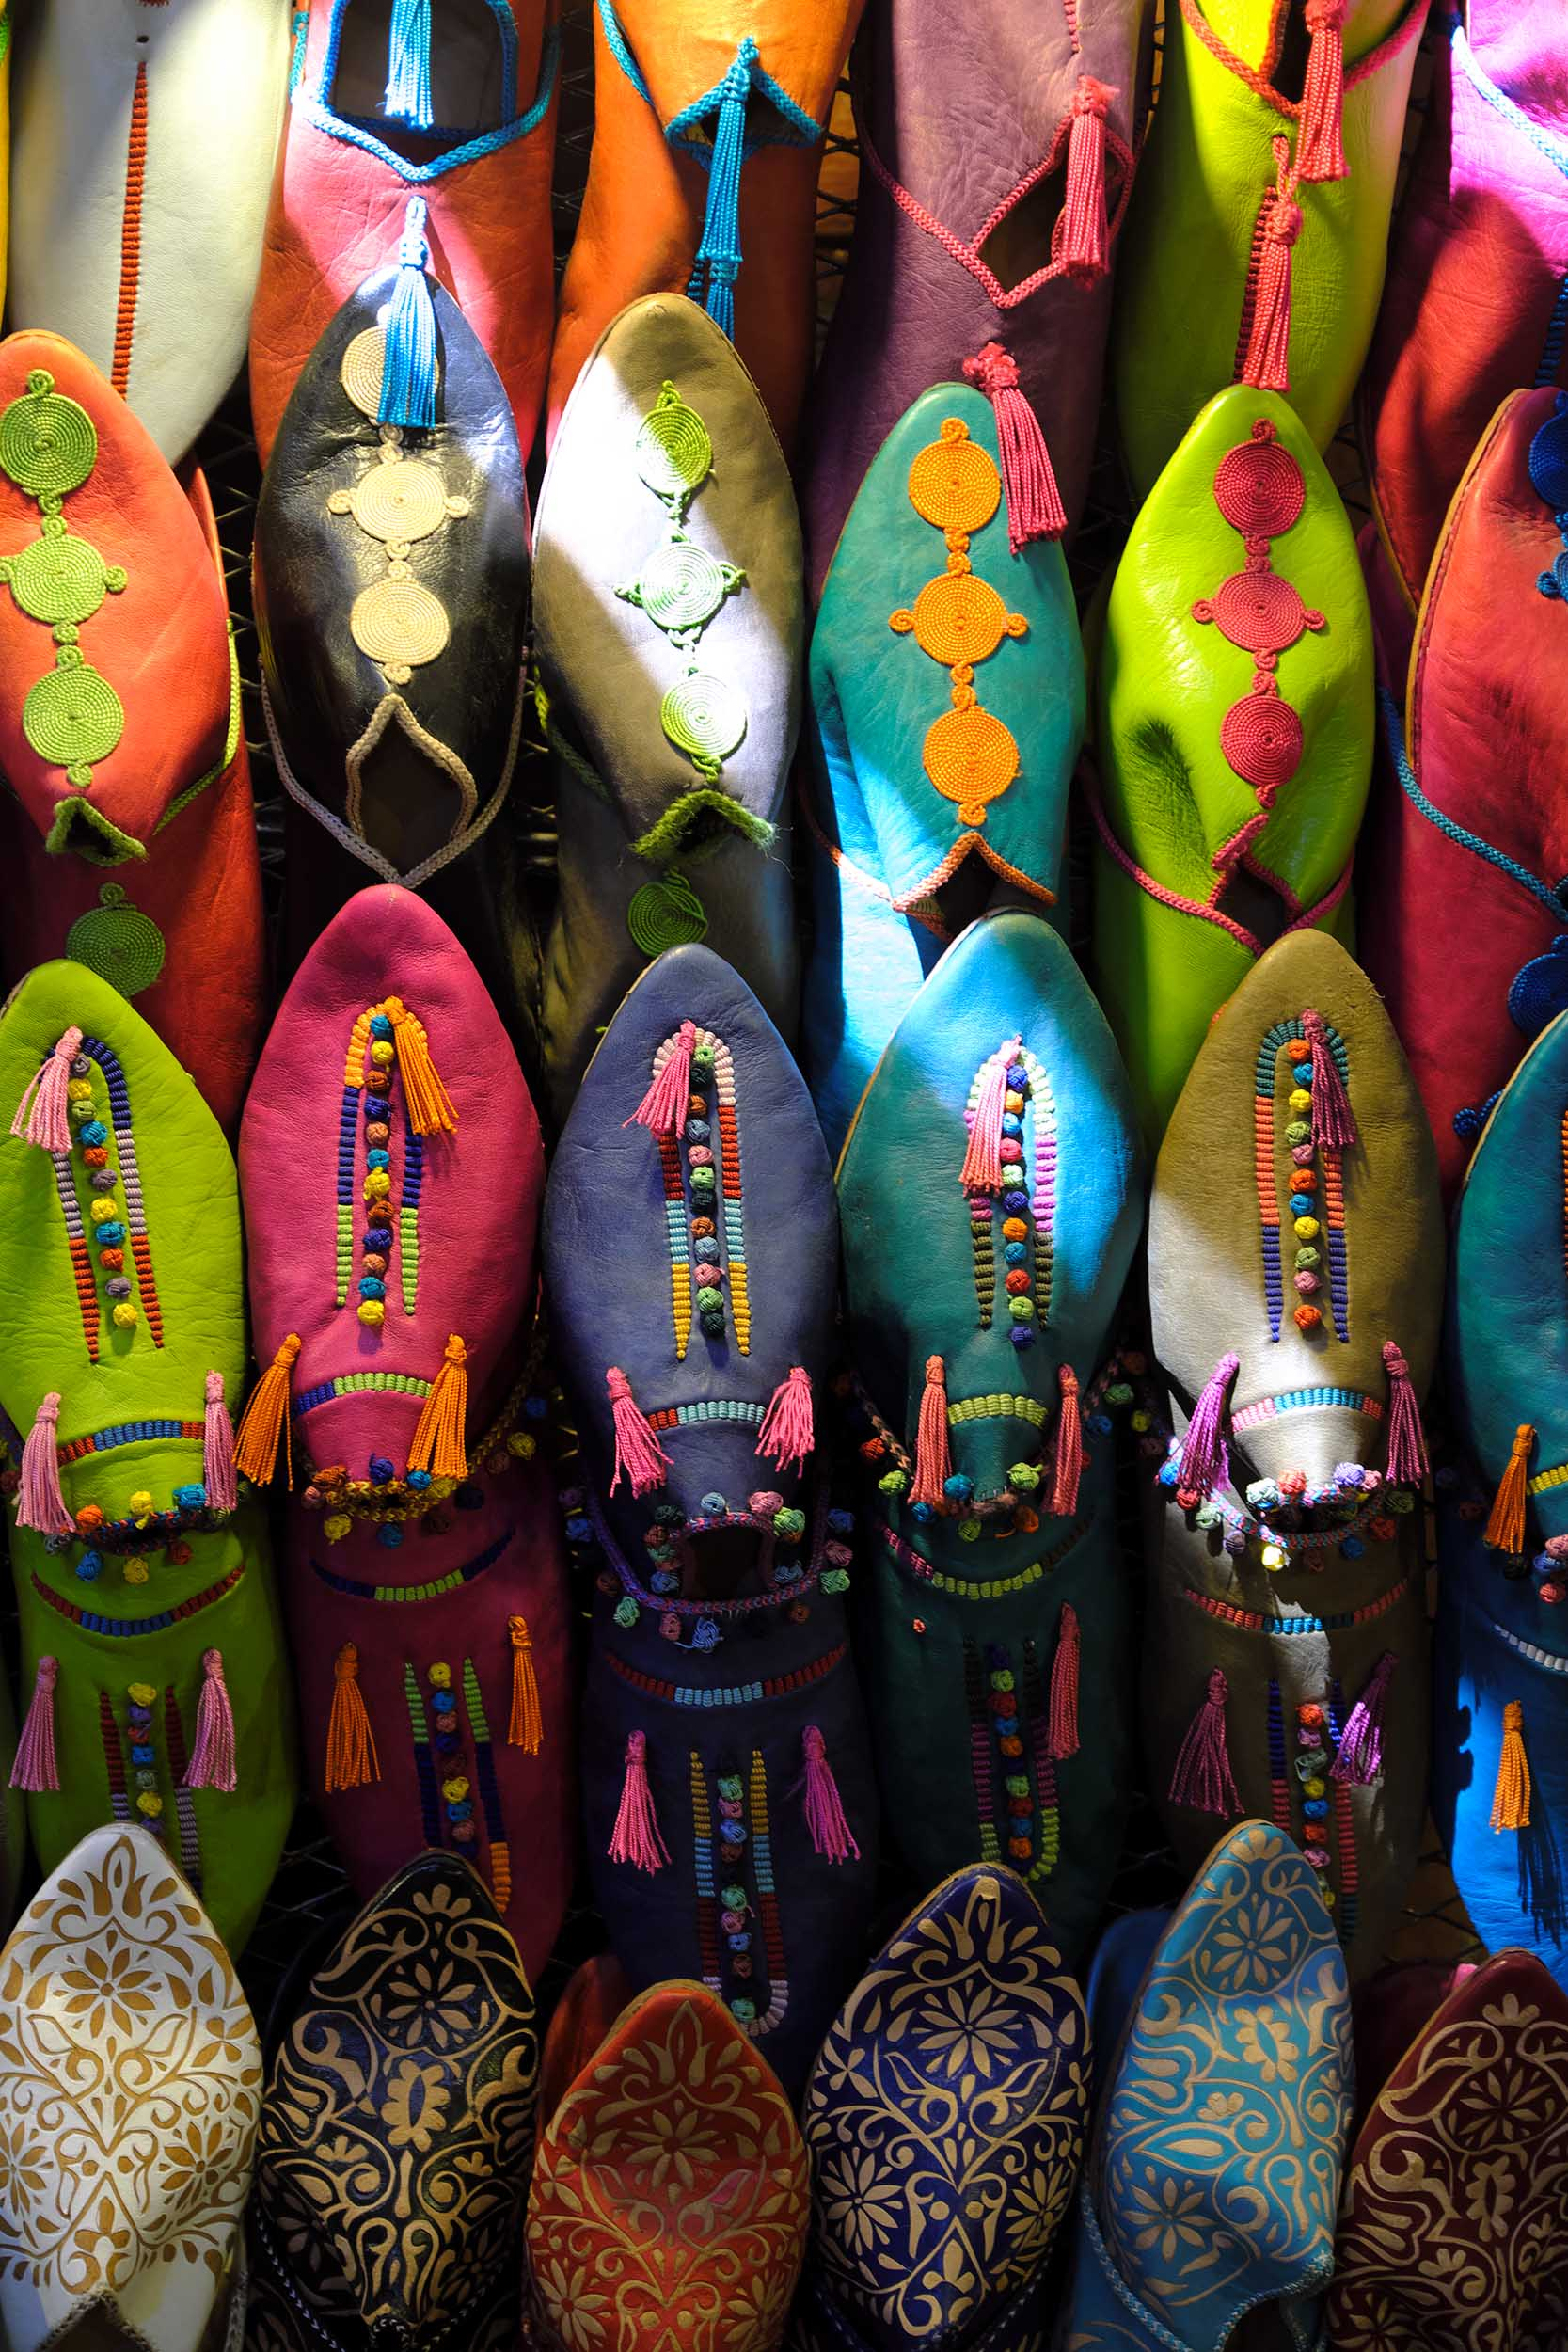 Berber shoes on display in Souq Smata in the medina of Marrakesh.